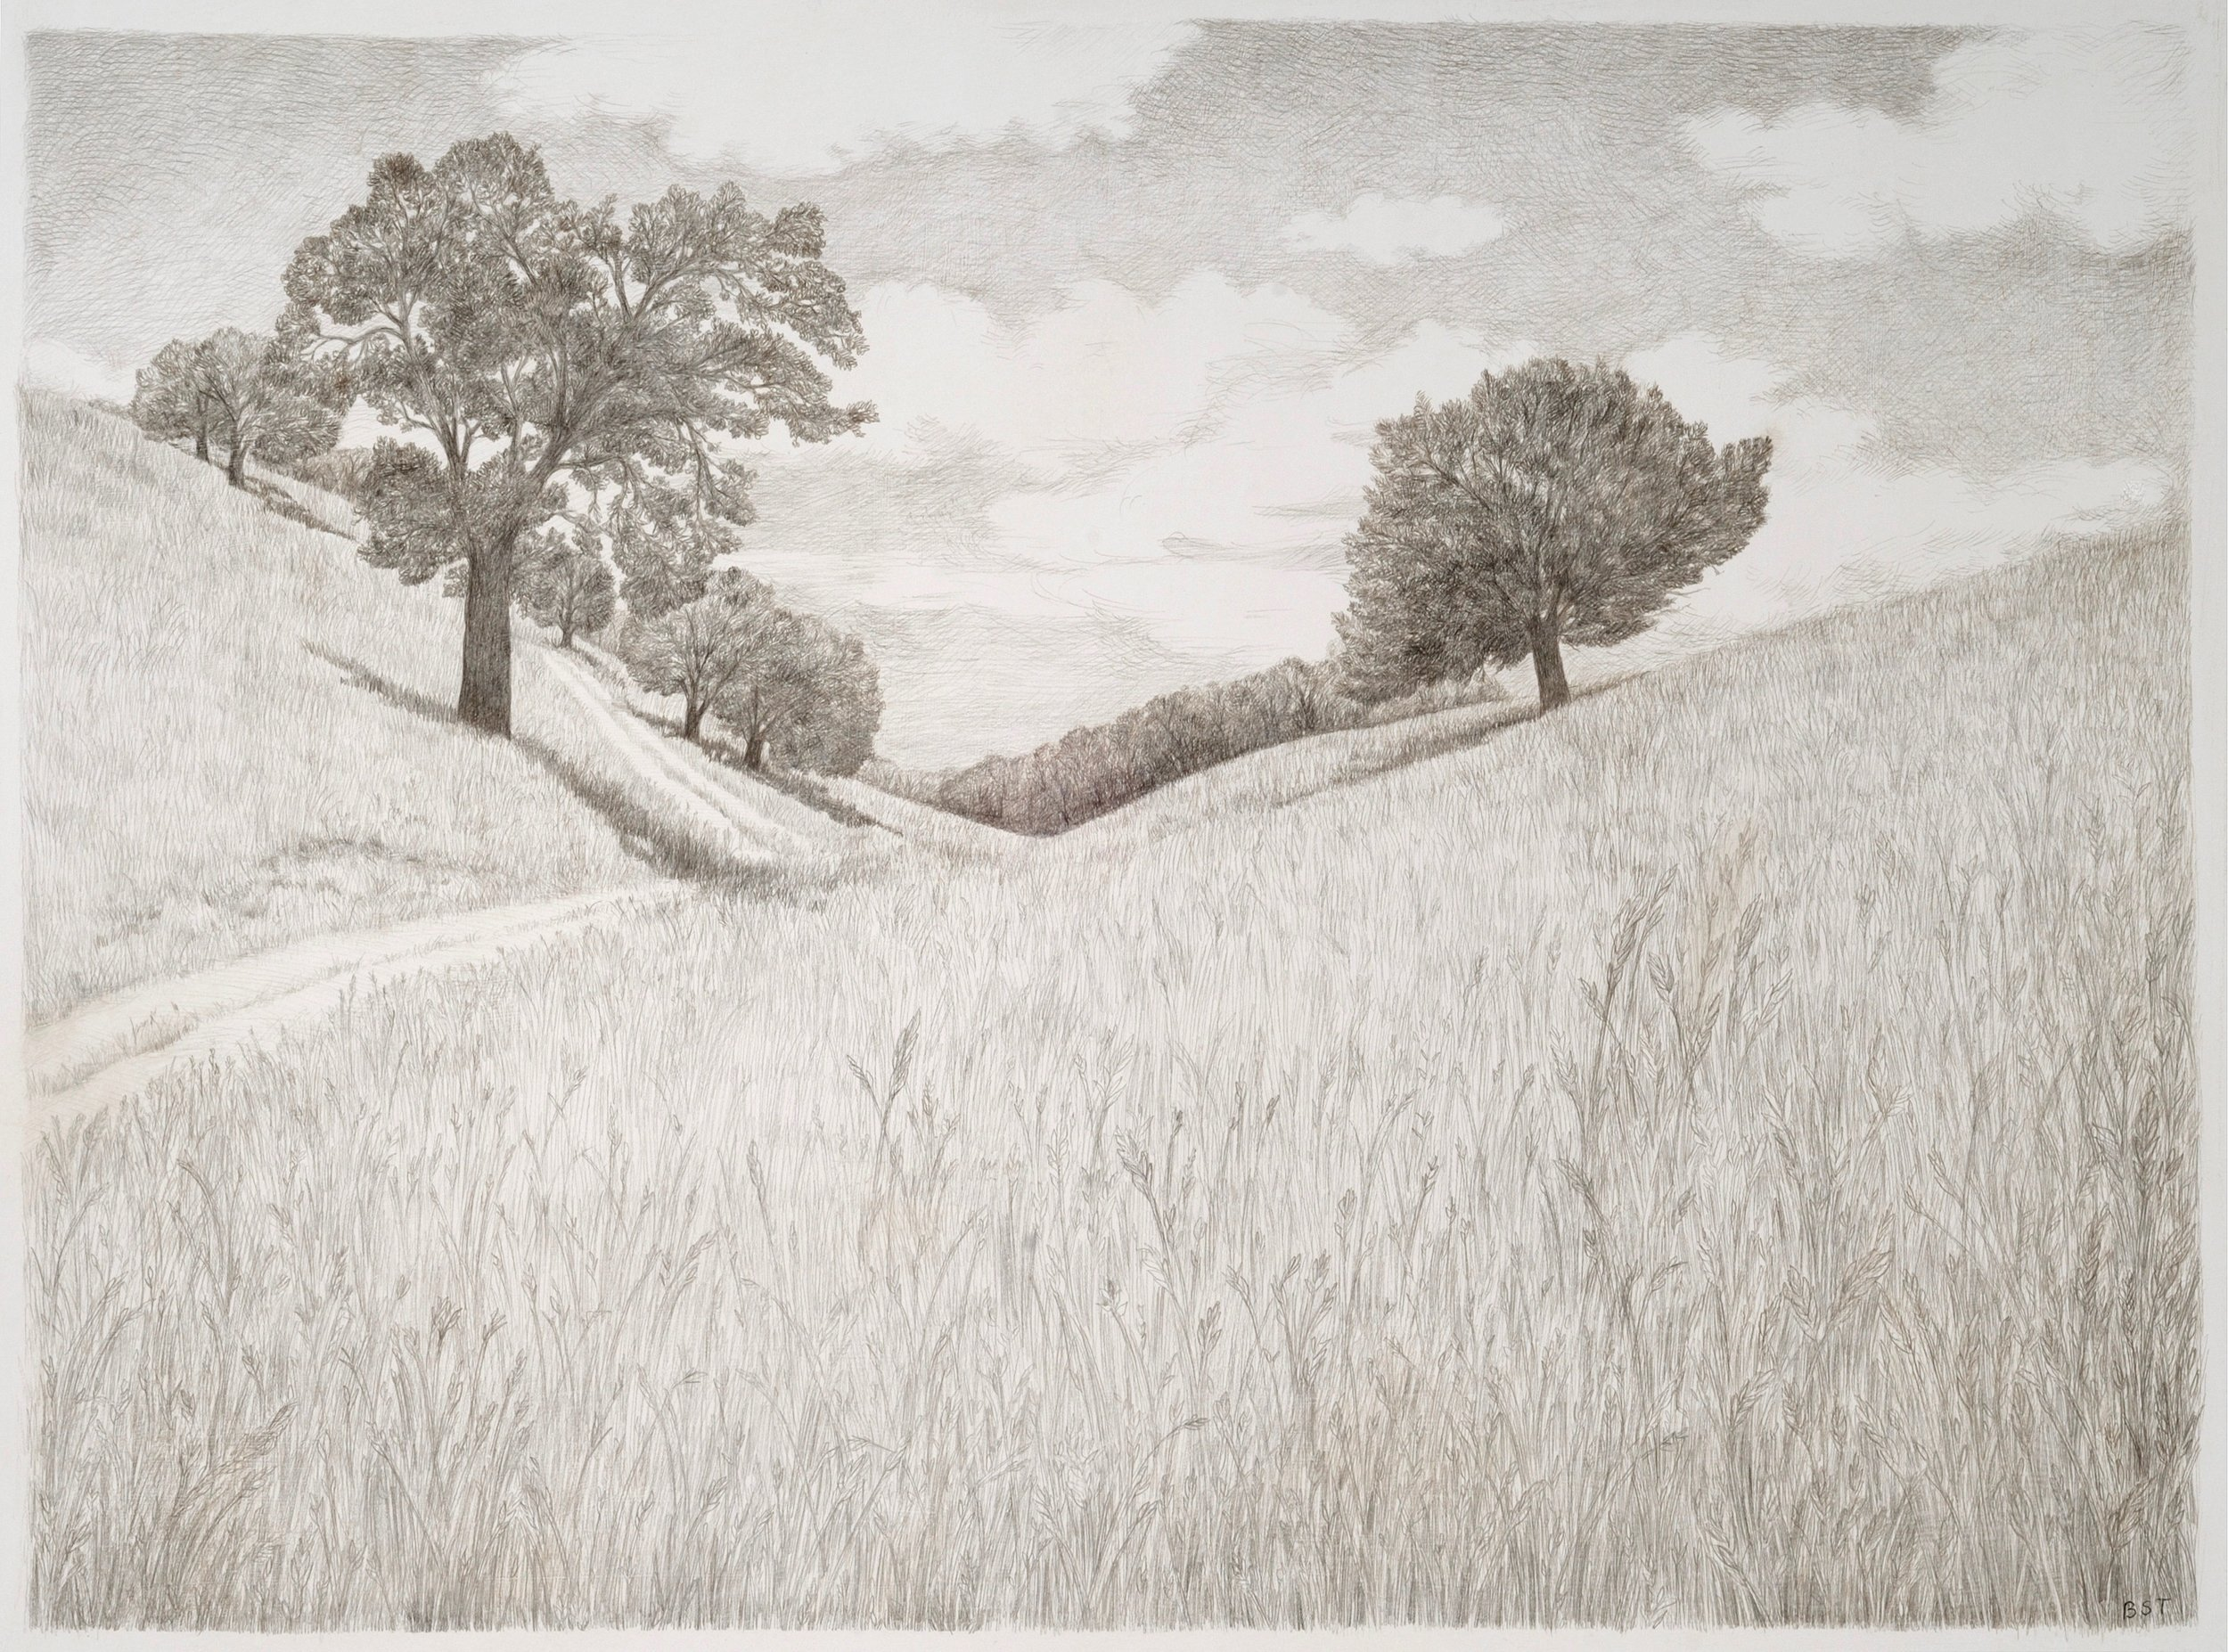 Santa Ana, 2014, silverpoint on paper, 30 x 22 in, $2,000